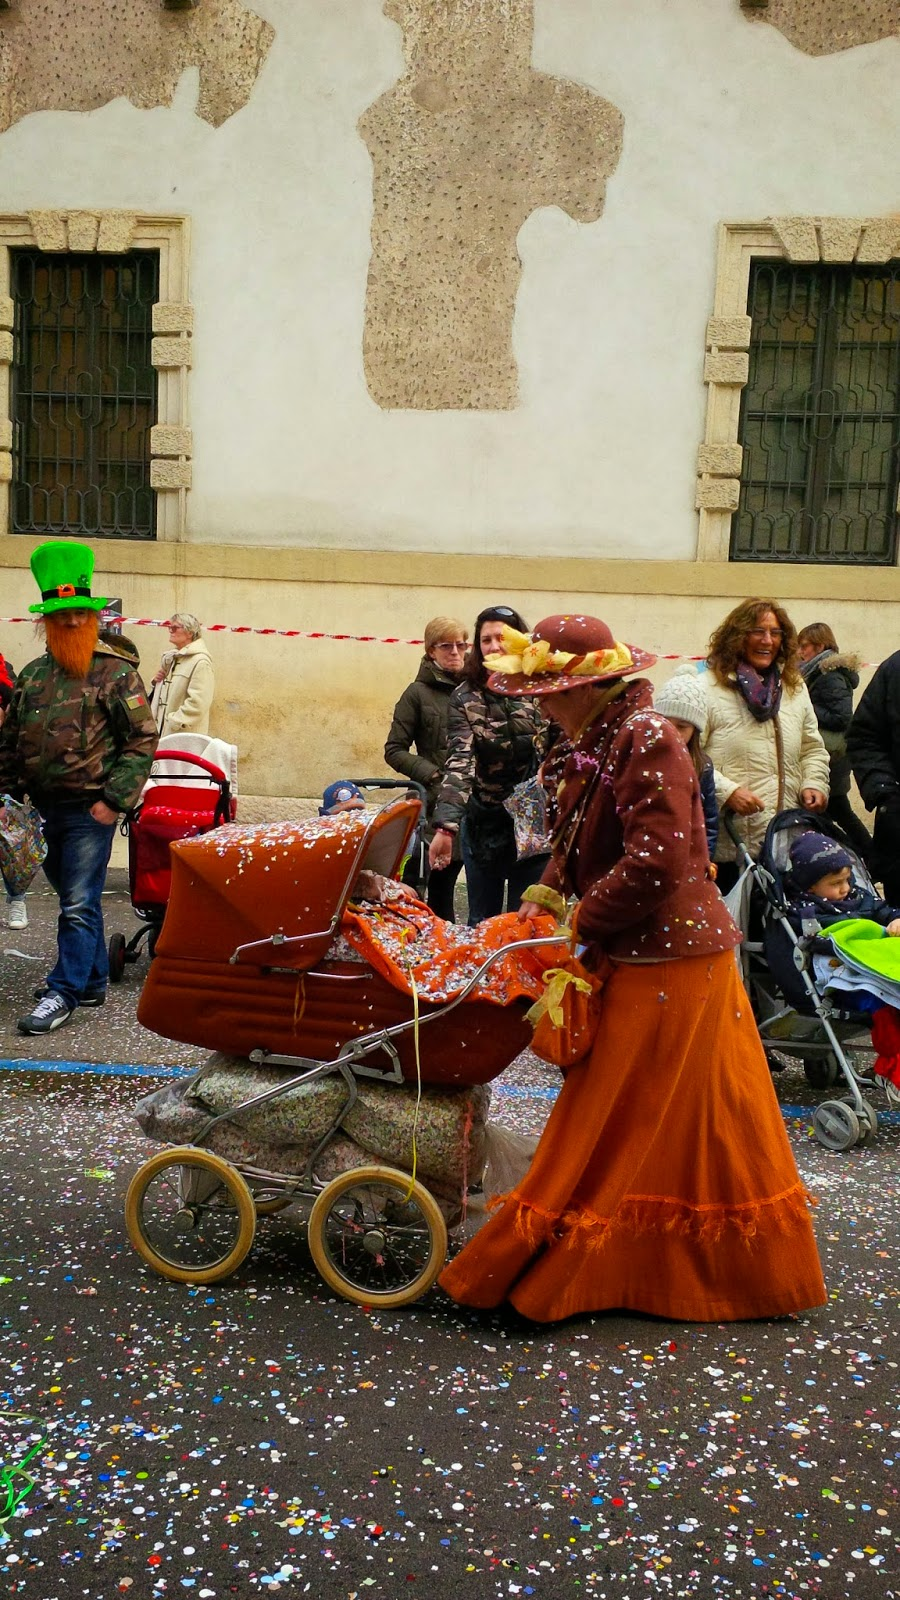 A lady in costume pushes a buggy stuffed with large bags filled with confetti at Verona Carnival